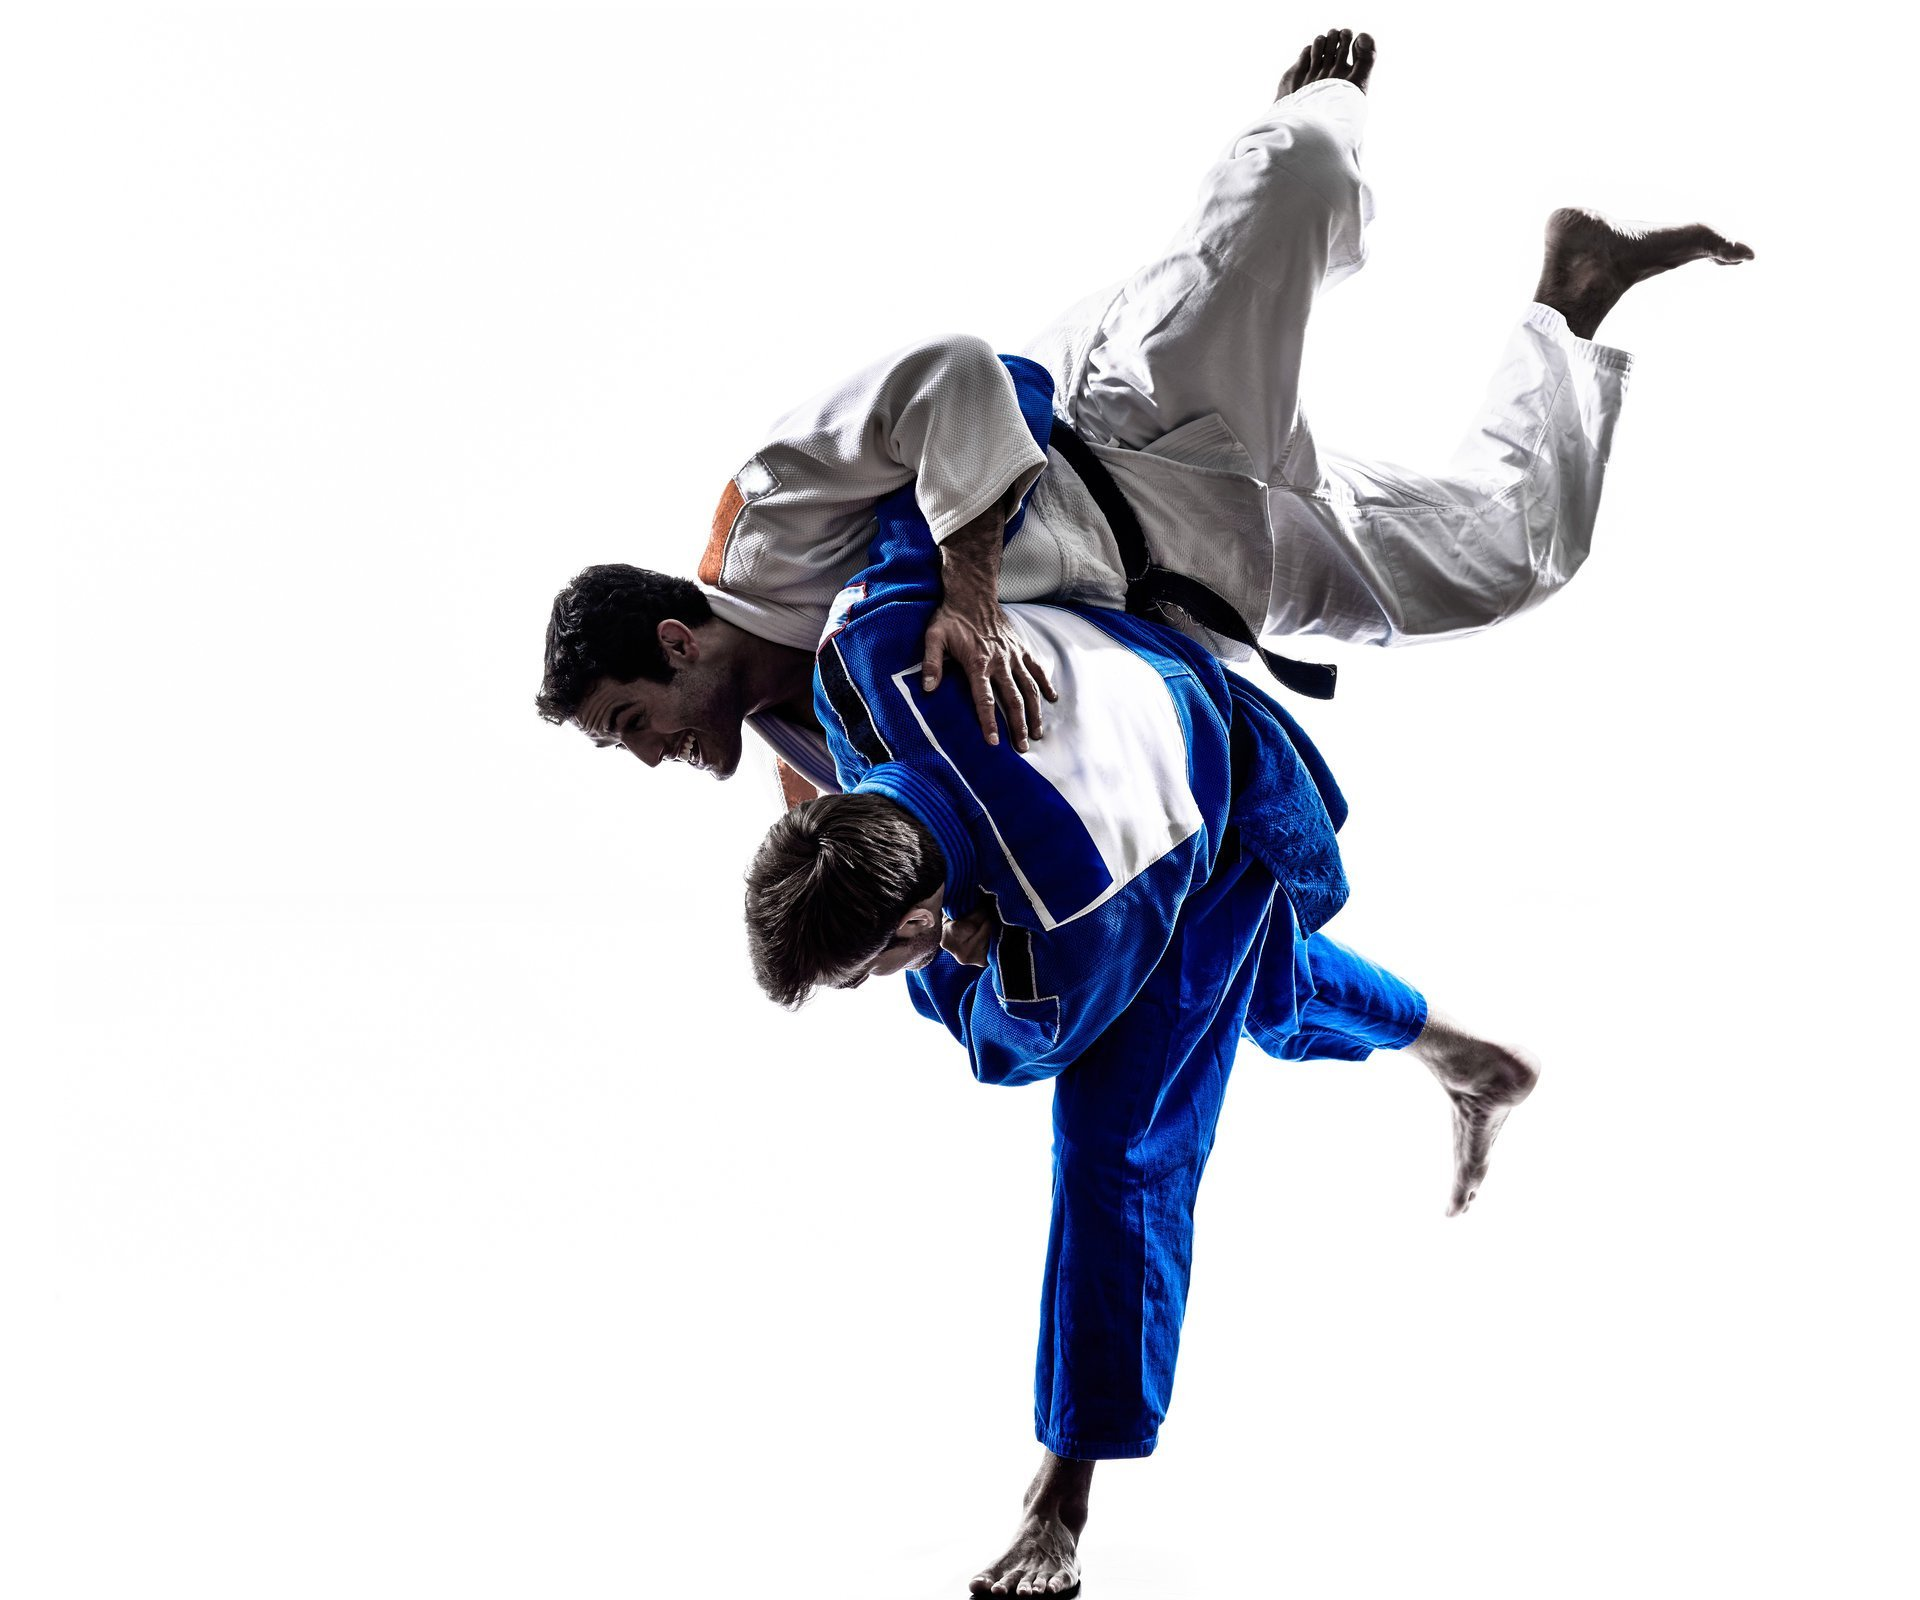 Judo Wallpapers 47 Judo 2016 Wallpapers Archive New Photos 1920x1600